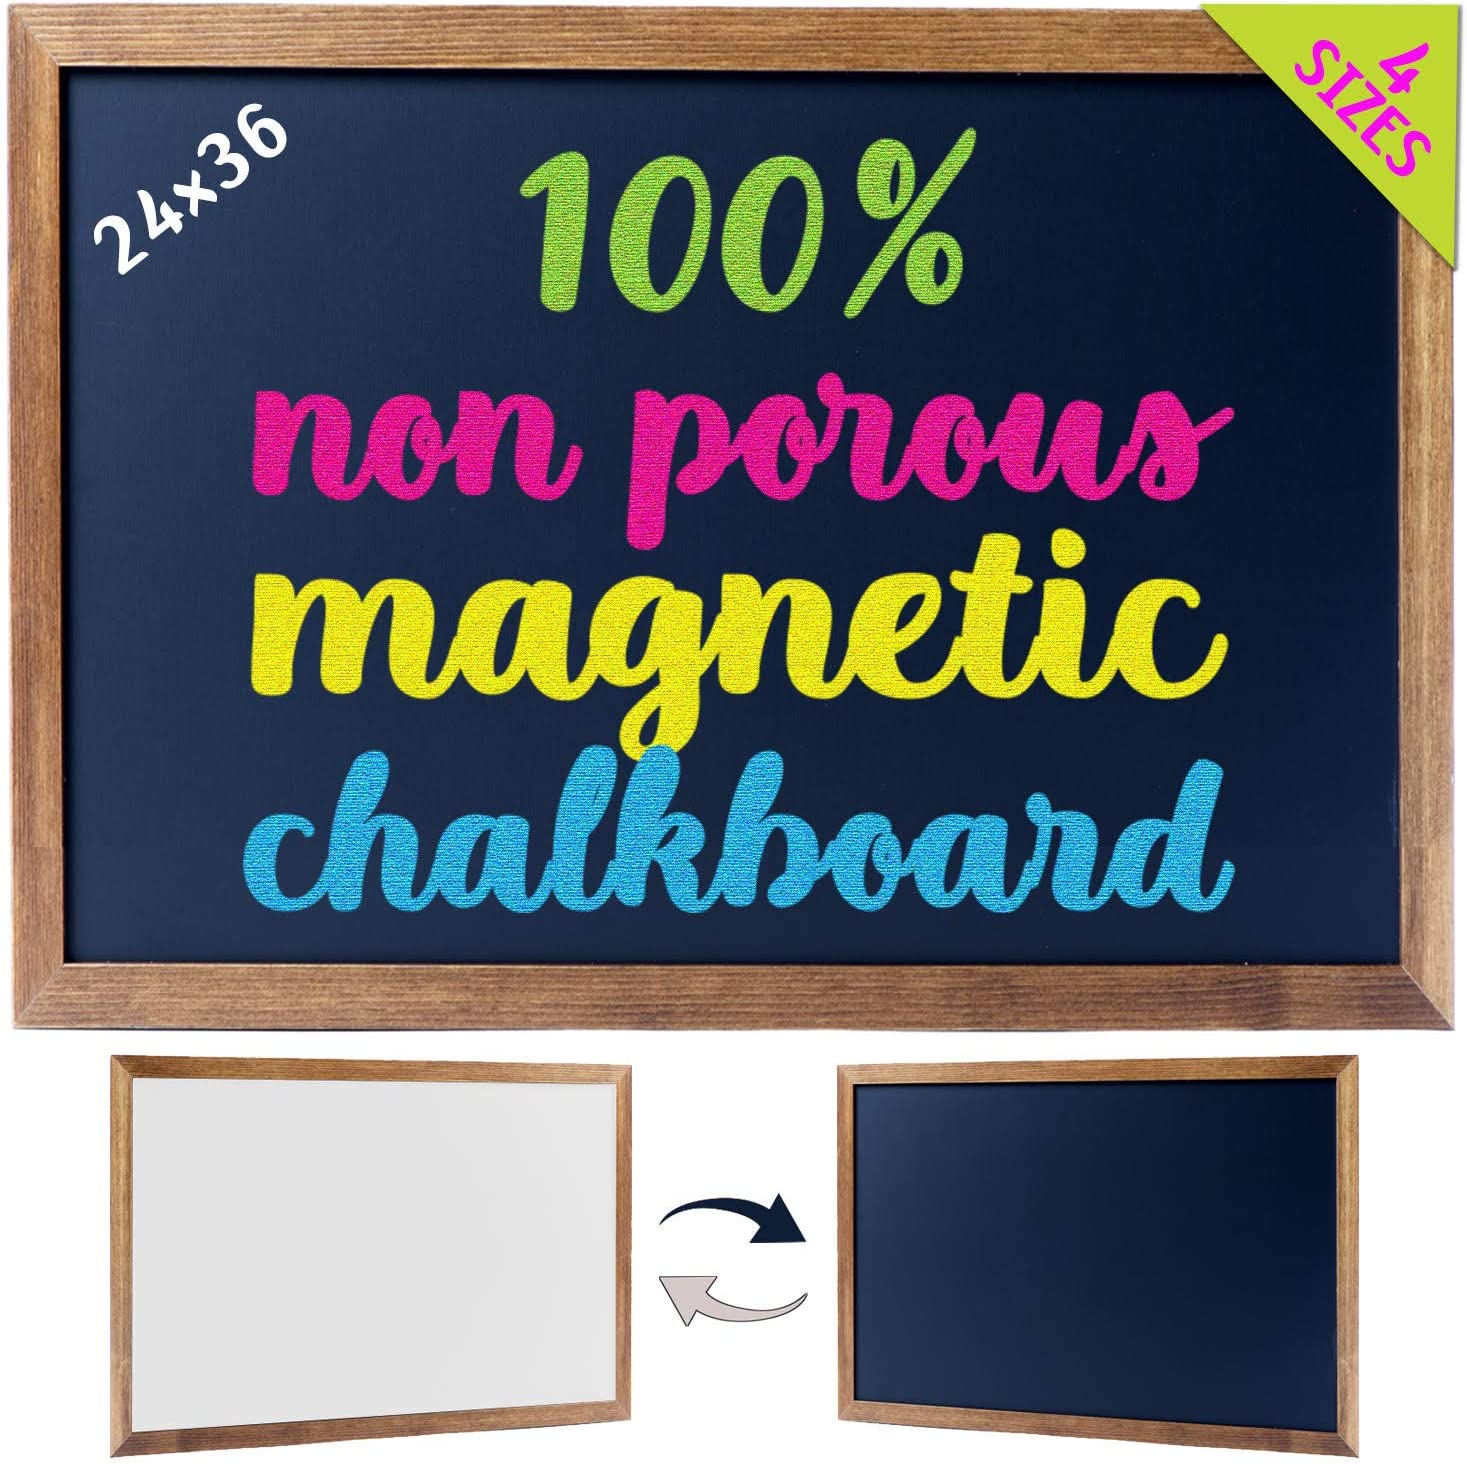 Cards Measure 5.75 x 4.1 Proms Events 100 Office Supplies Chalk Boards Perfect for Weddings Set of 100 Chalkboard Signs and 10 Chalk Markers! Organization and More!`